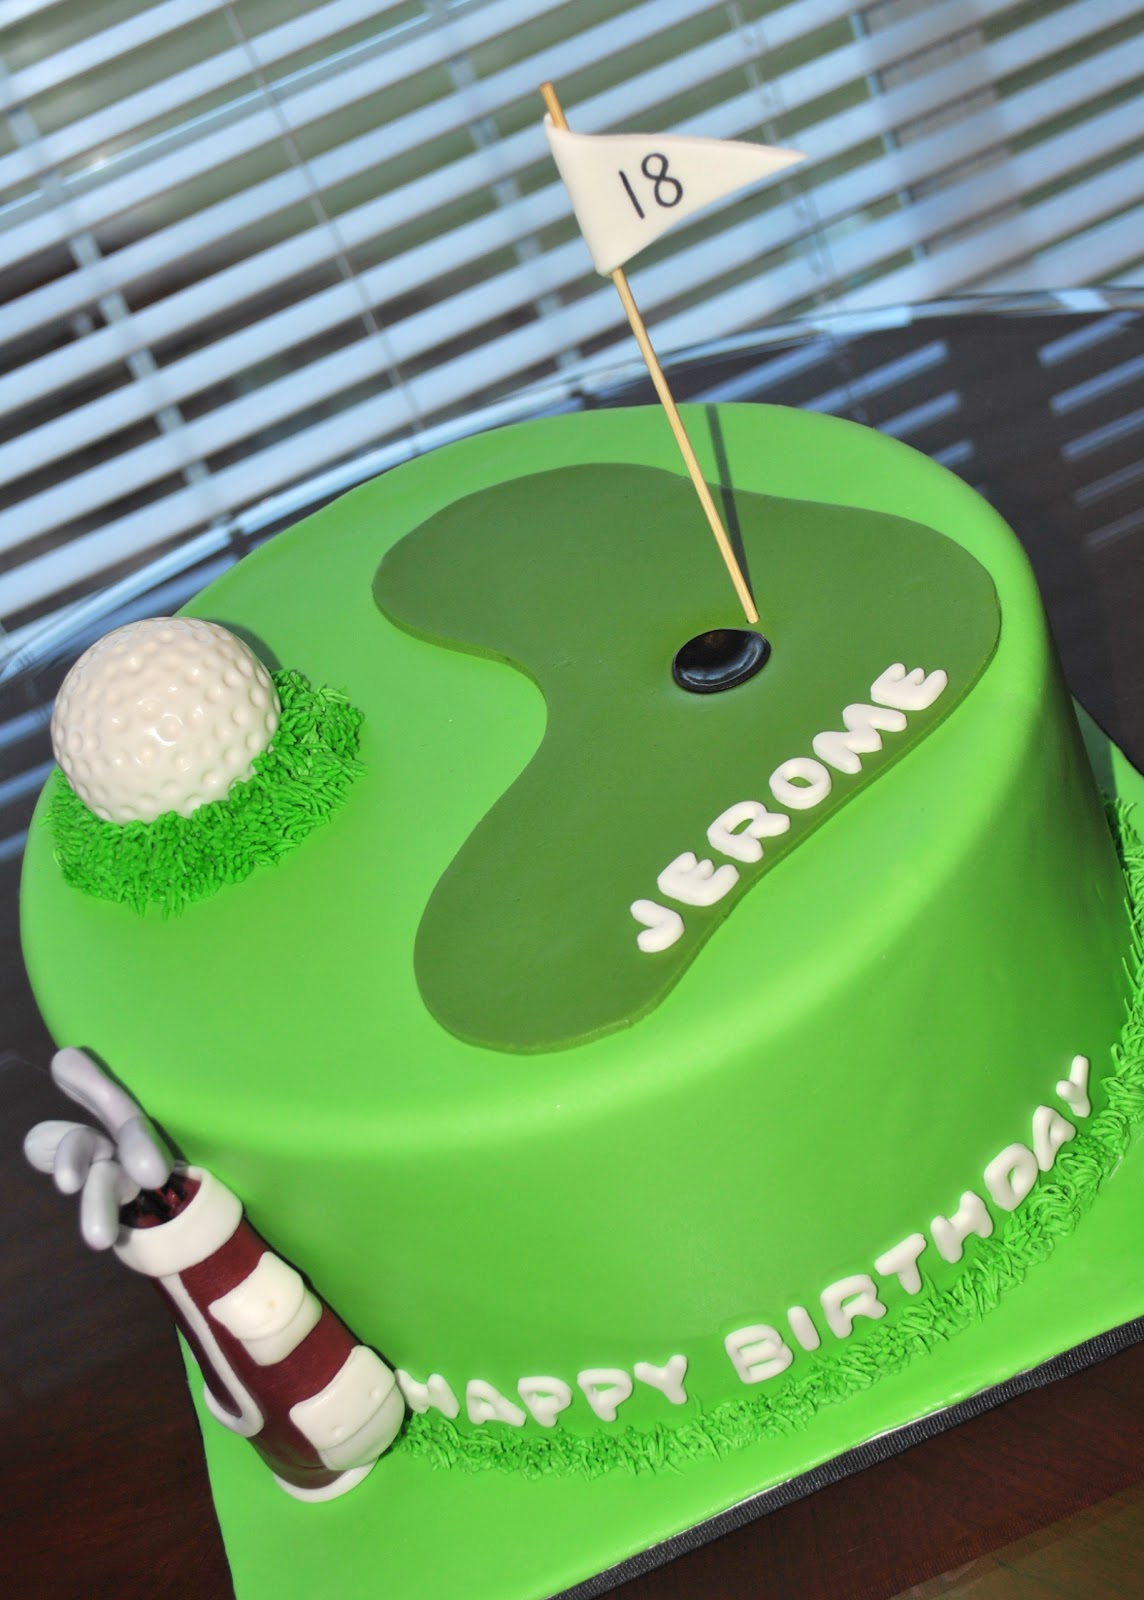 Hope S Sweet Cakes Golf Cake And Cake Pops